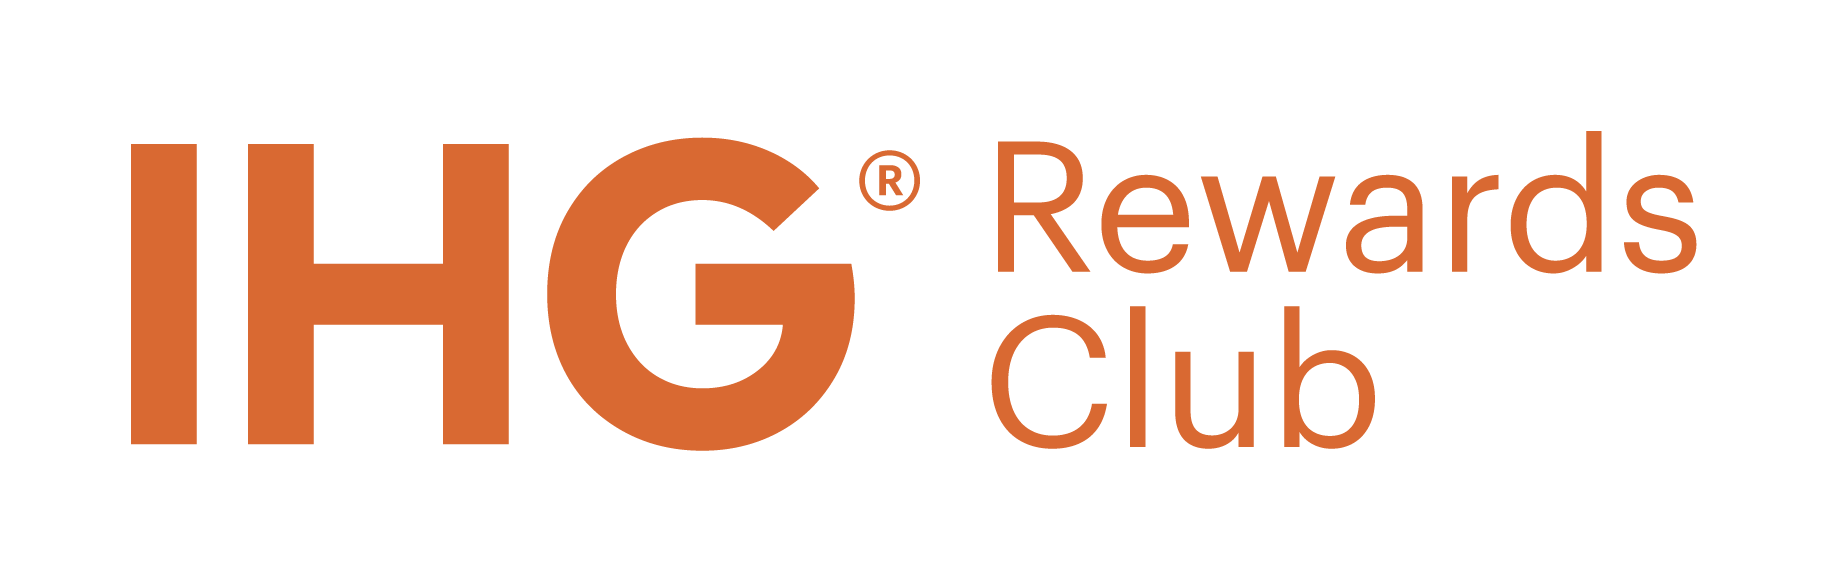 ihg_rc_logo-transparent (1)